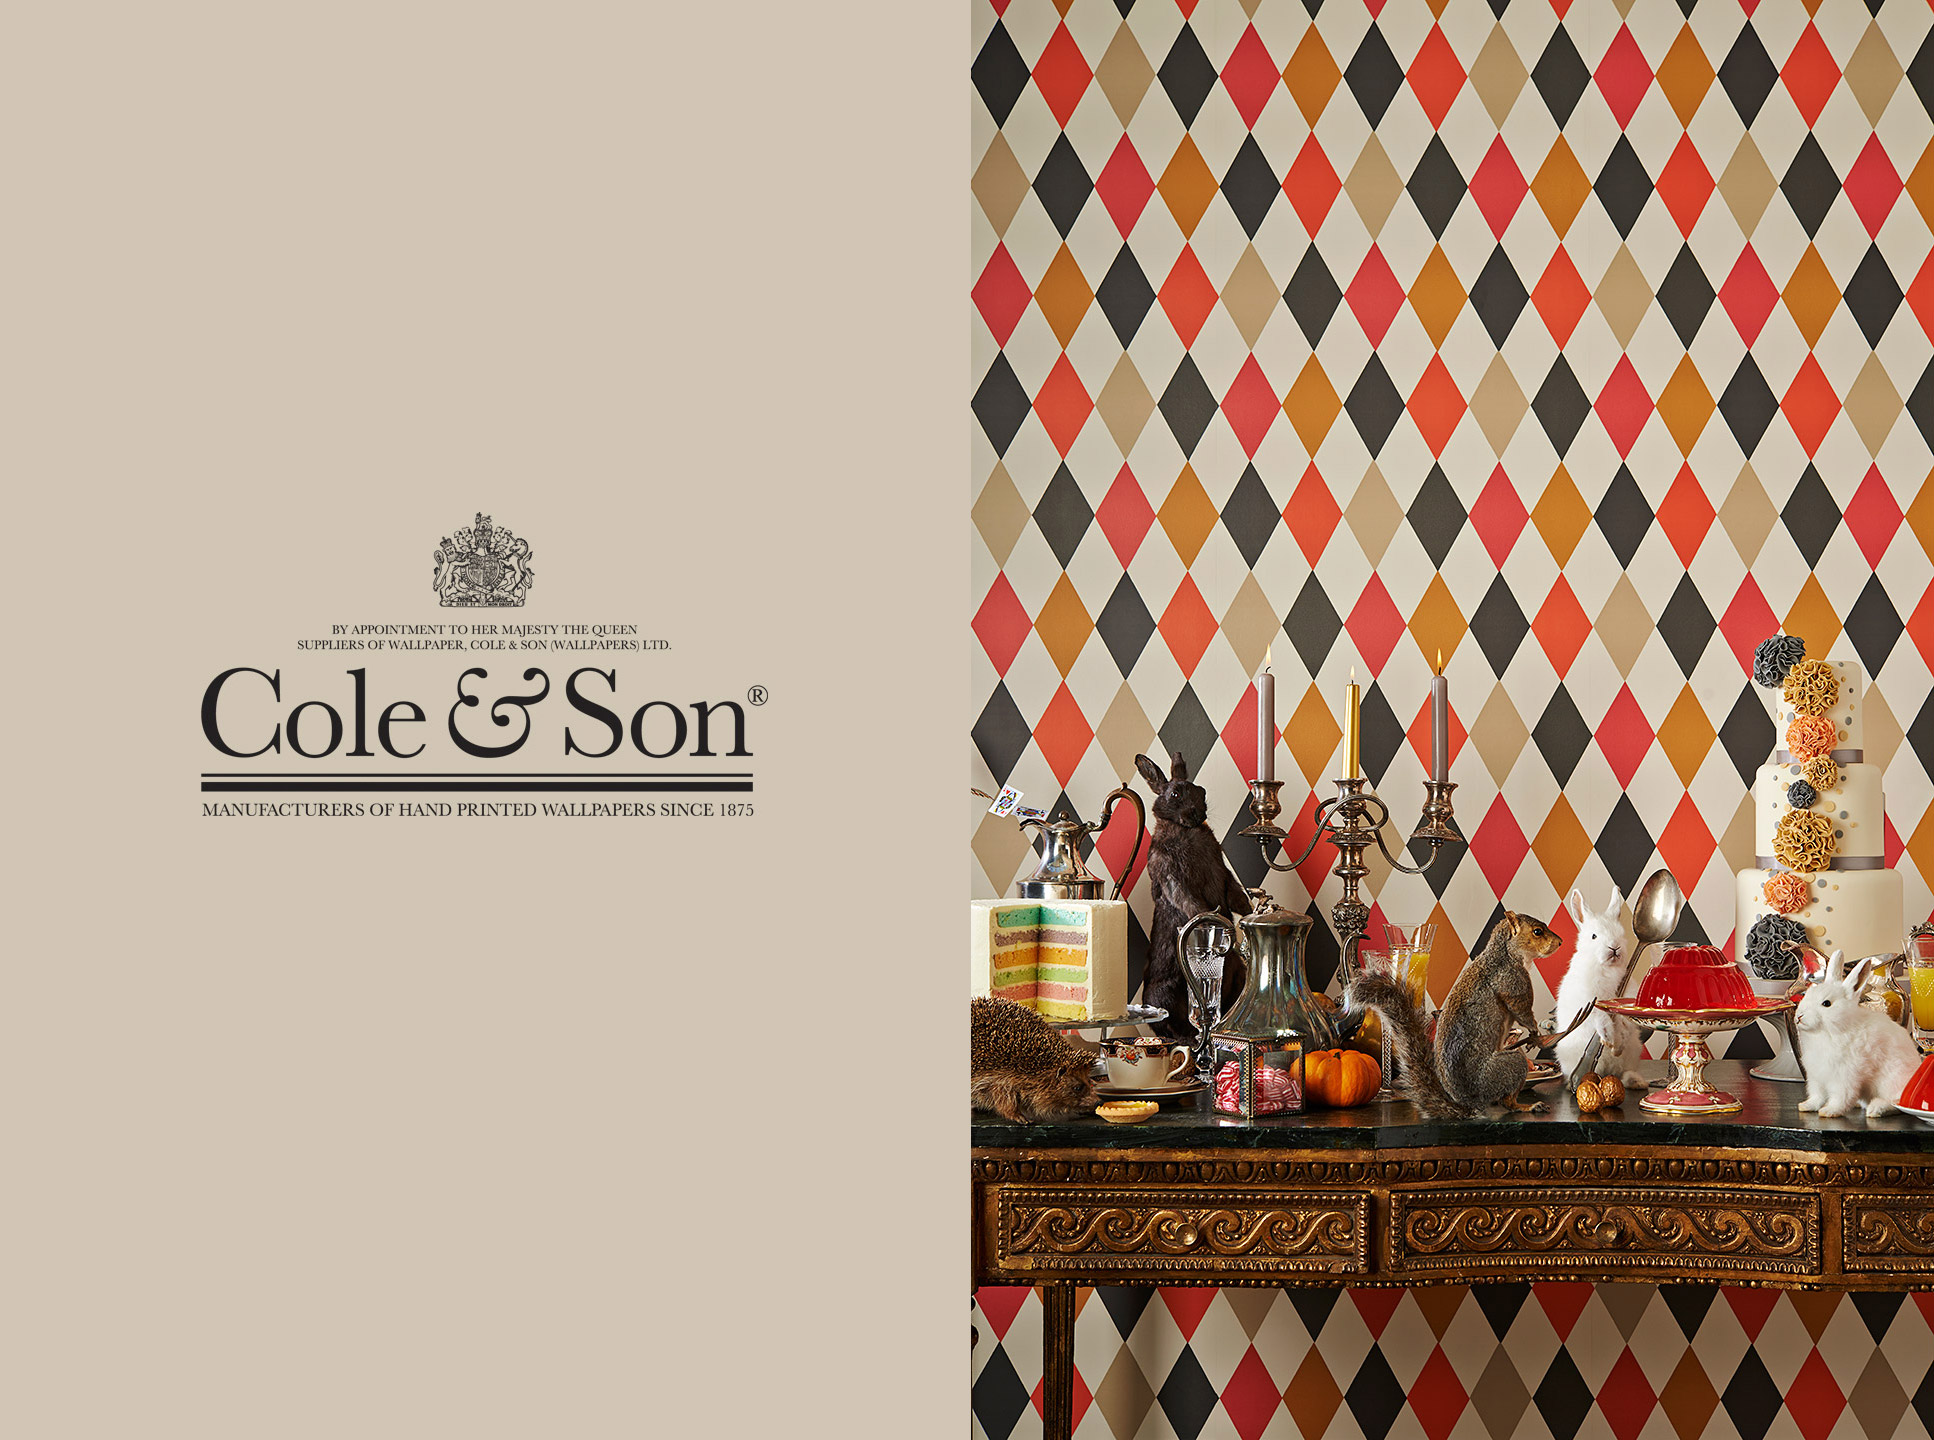 Cole & Son Wallpapers | Advertising